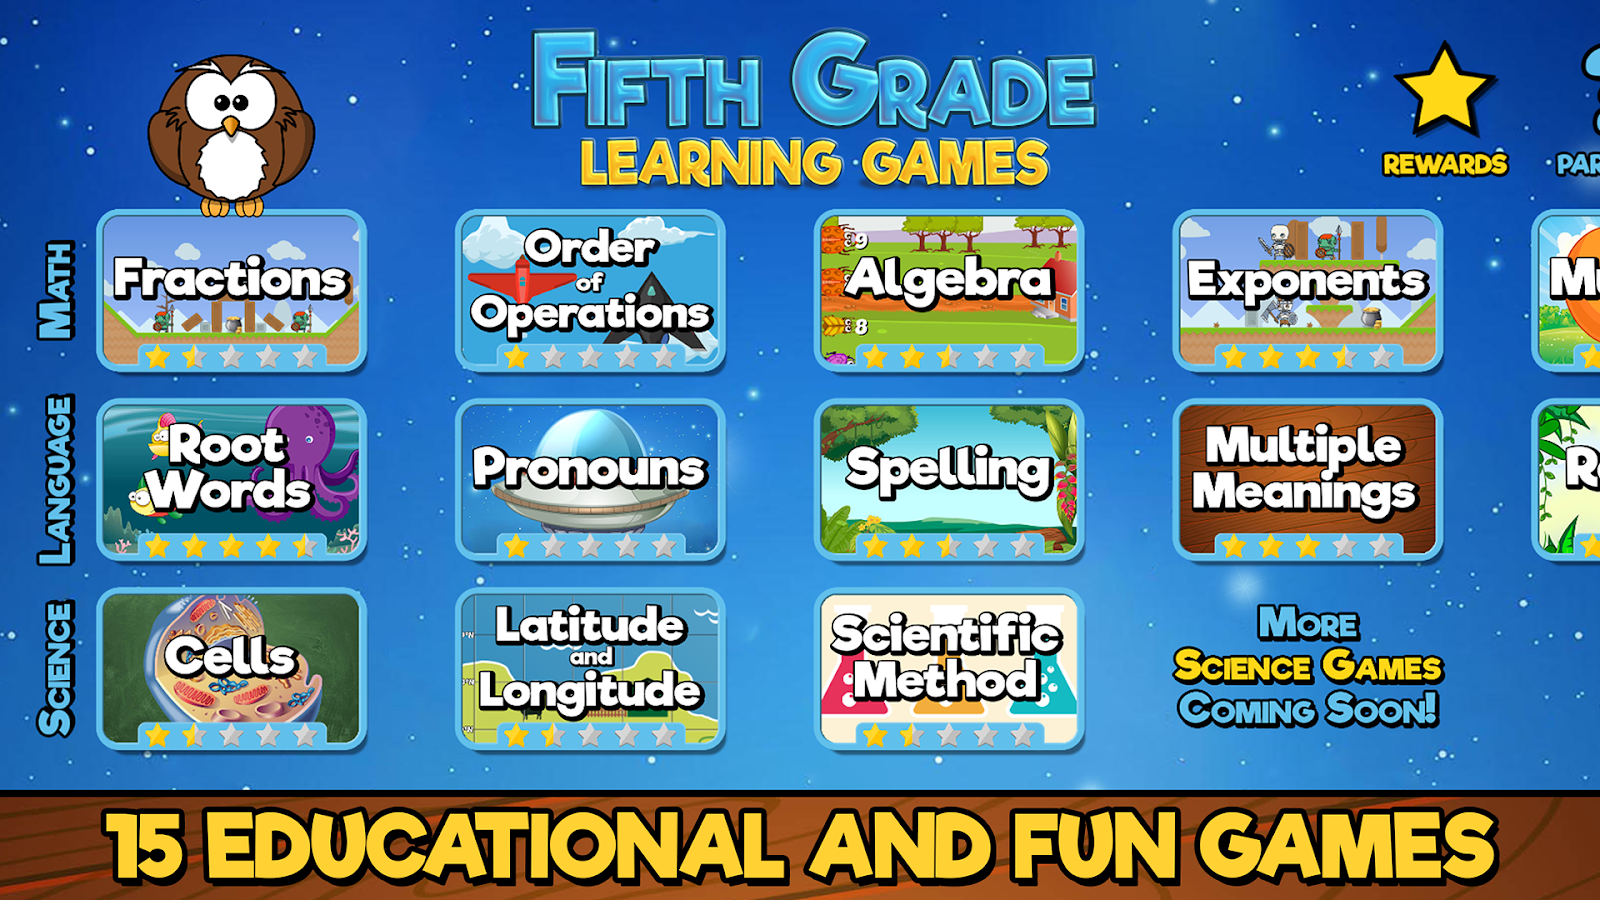 Fifth Grade Learning Games 2.0 APK Download - Android Educational Games